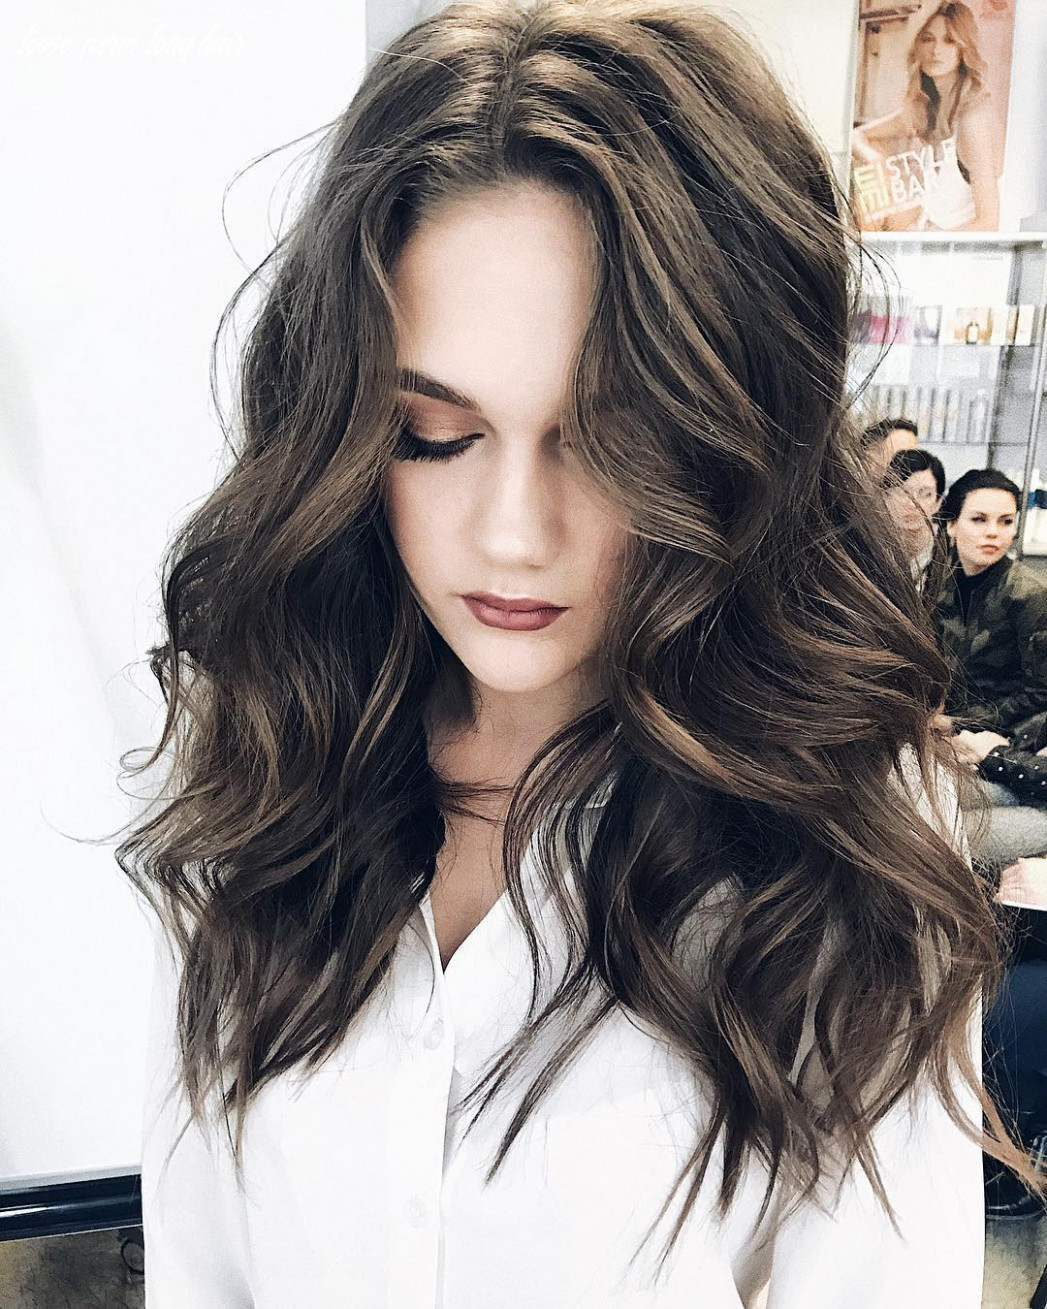 11 Gorgeous Long Wavy Perm Hairstyles, Long Hair Styles 11